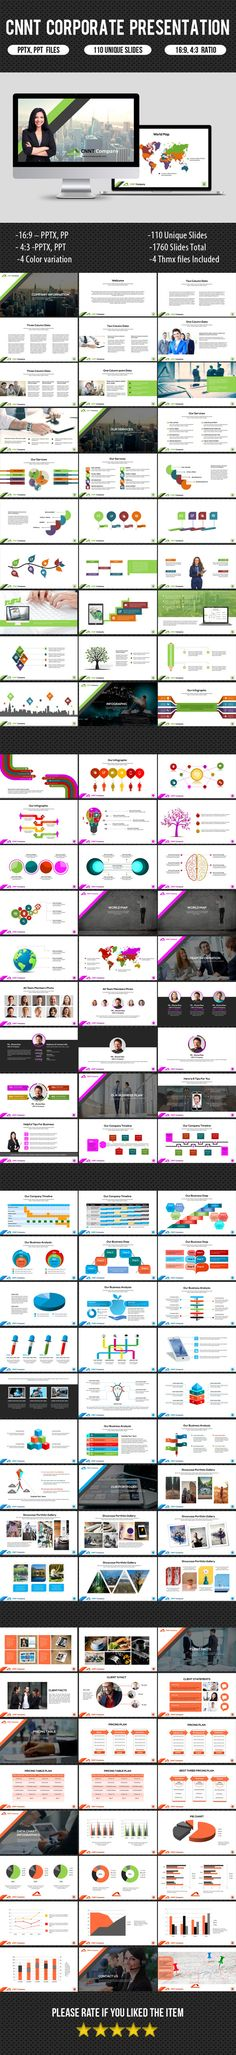 Corporate PowerPoint Template-v01 - Business PowerPoint Templates